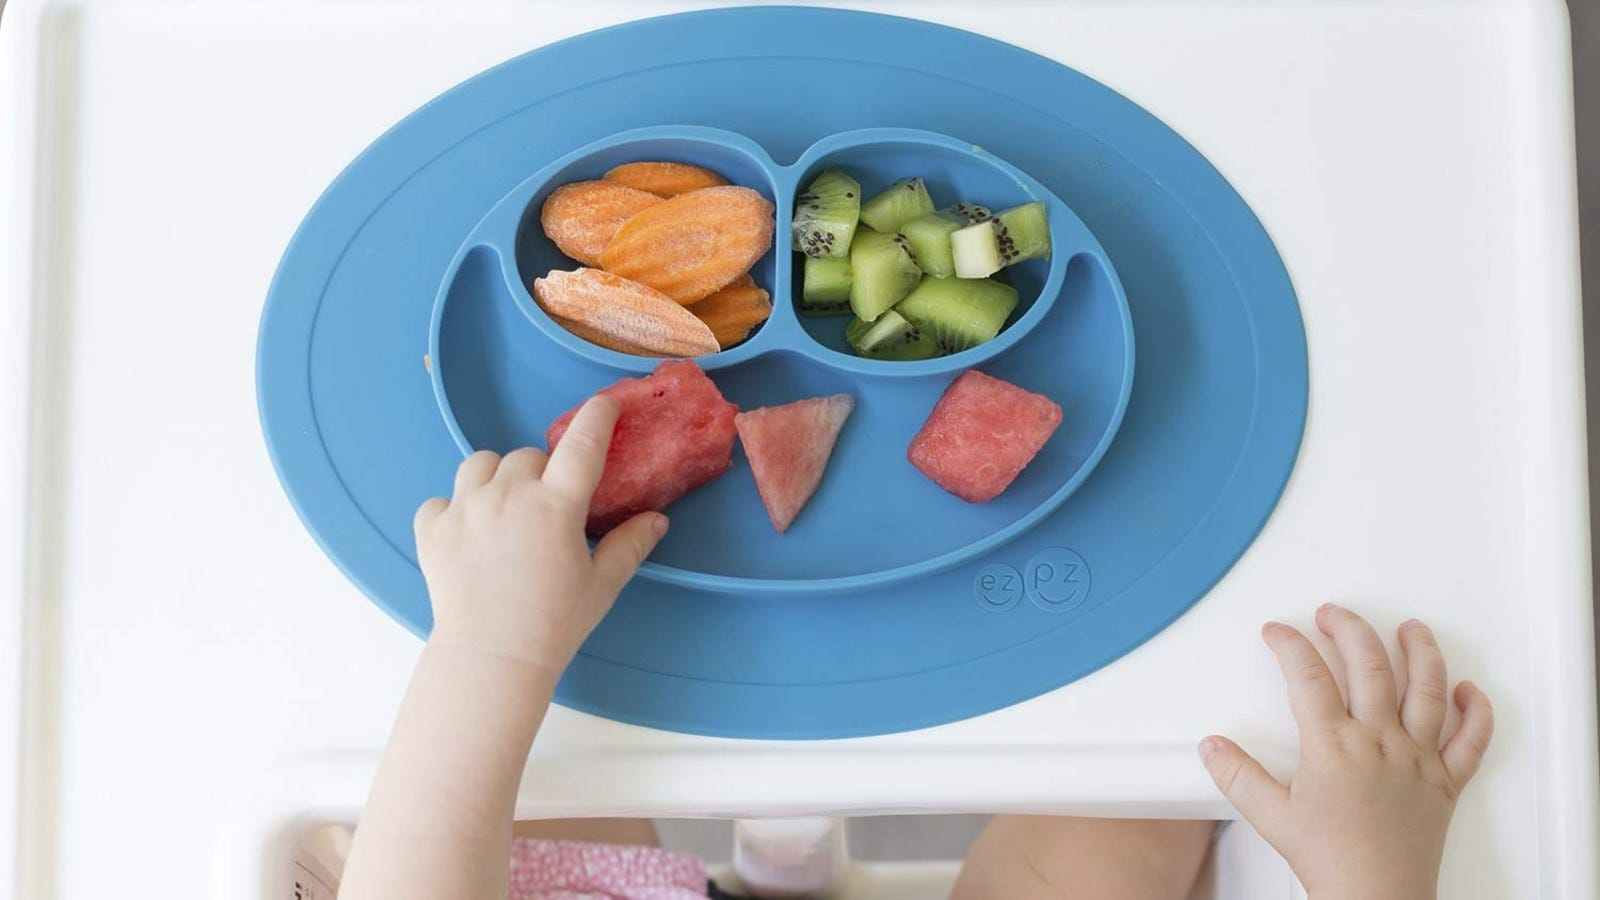 A toddler eating fruit and veggies from the blue ezpz Mini Mat.